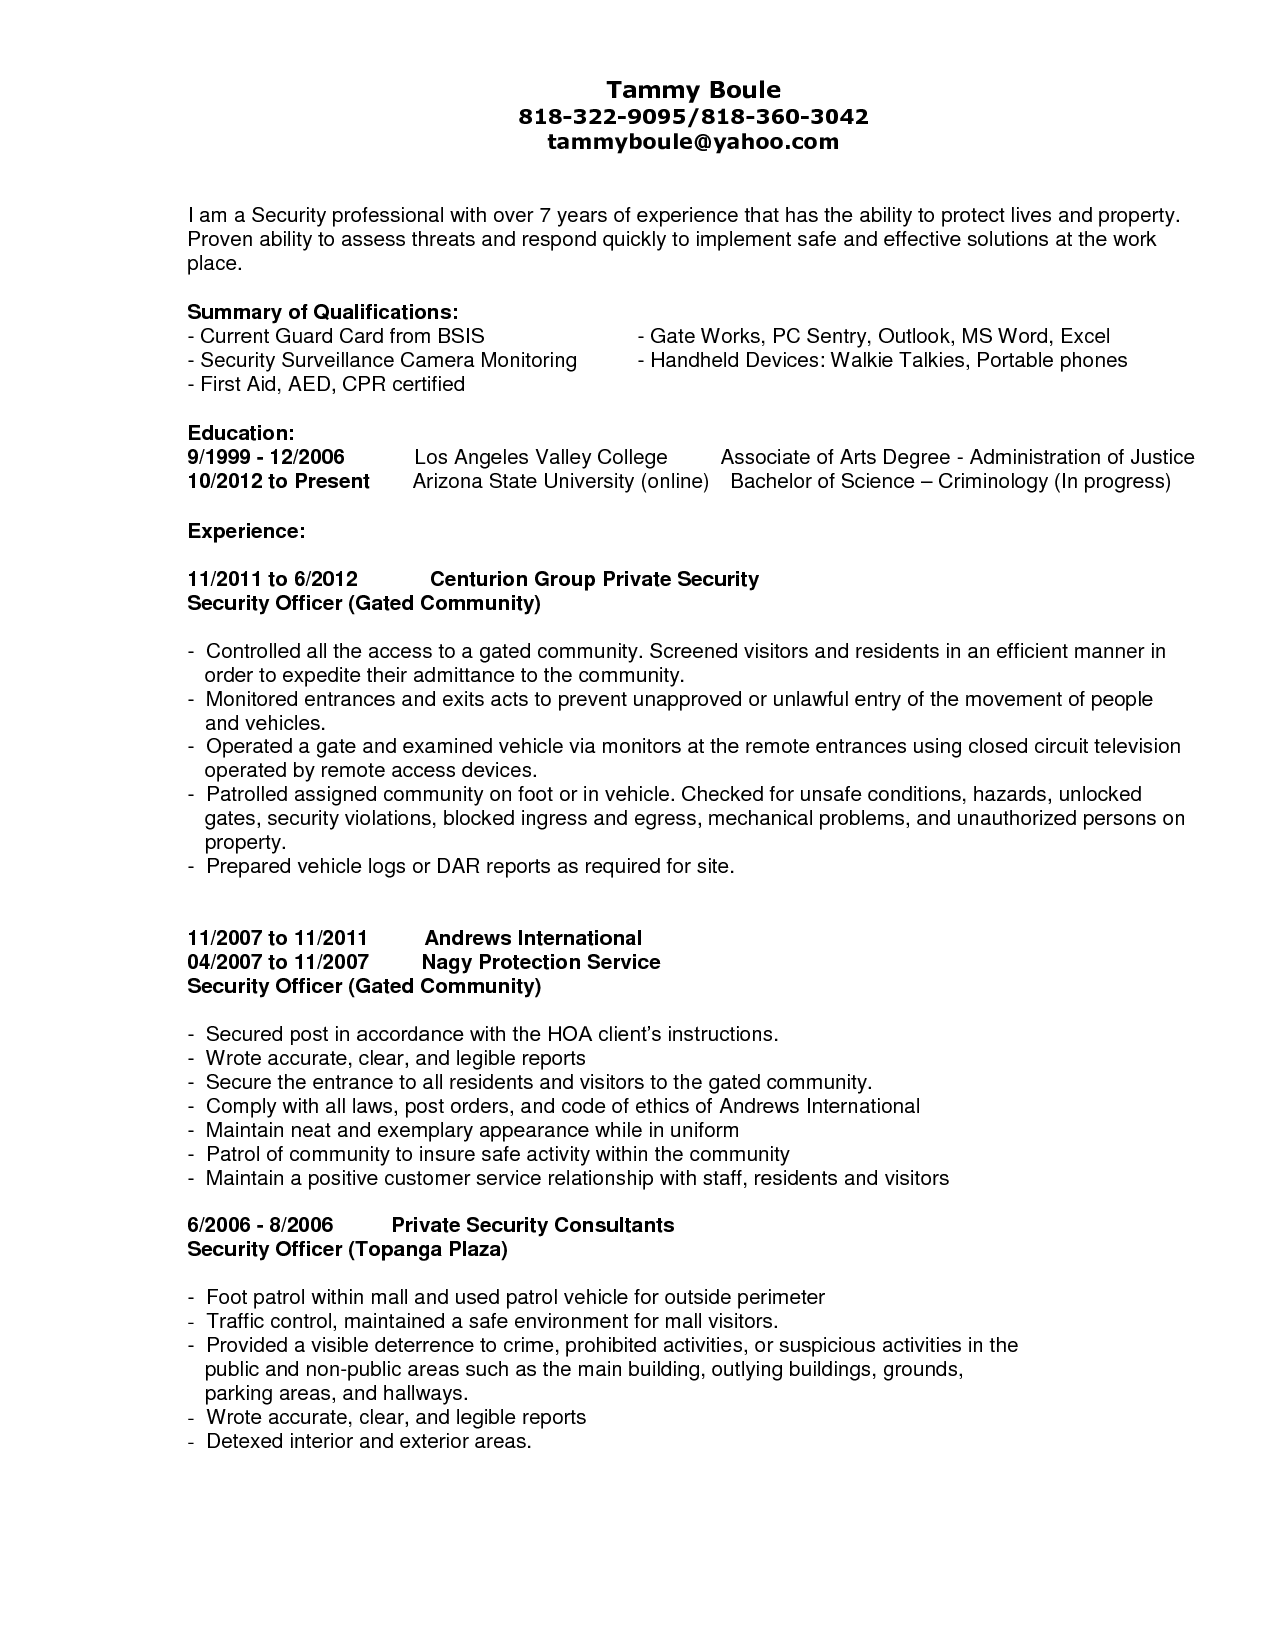 guard security officer resume ideas  httpwwwjobresumewebsite  - guard security officer resume ideas  httpwwwjobresumewebsite